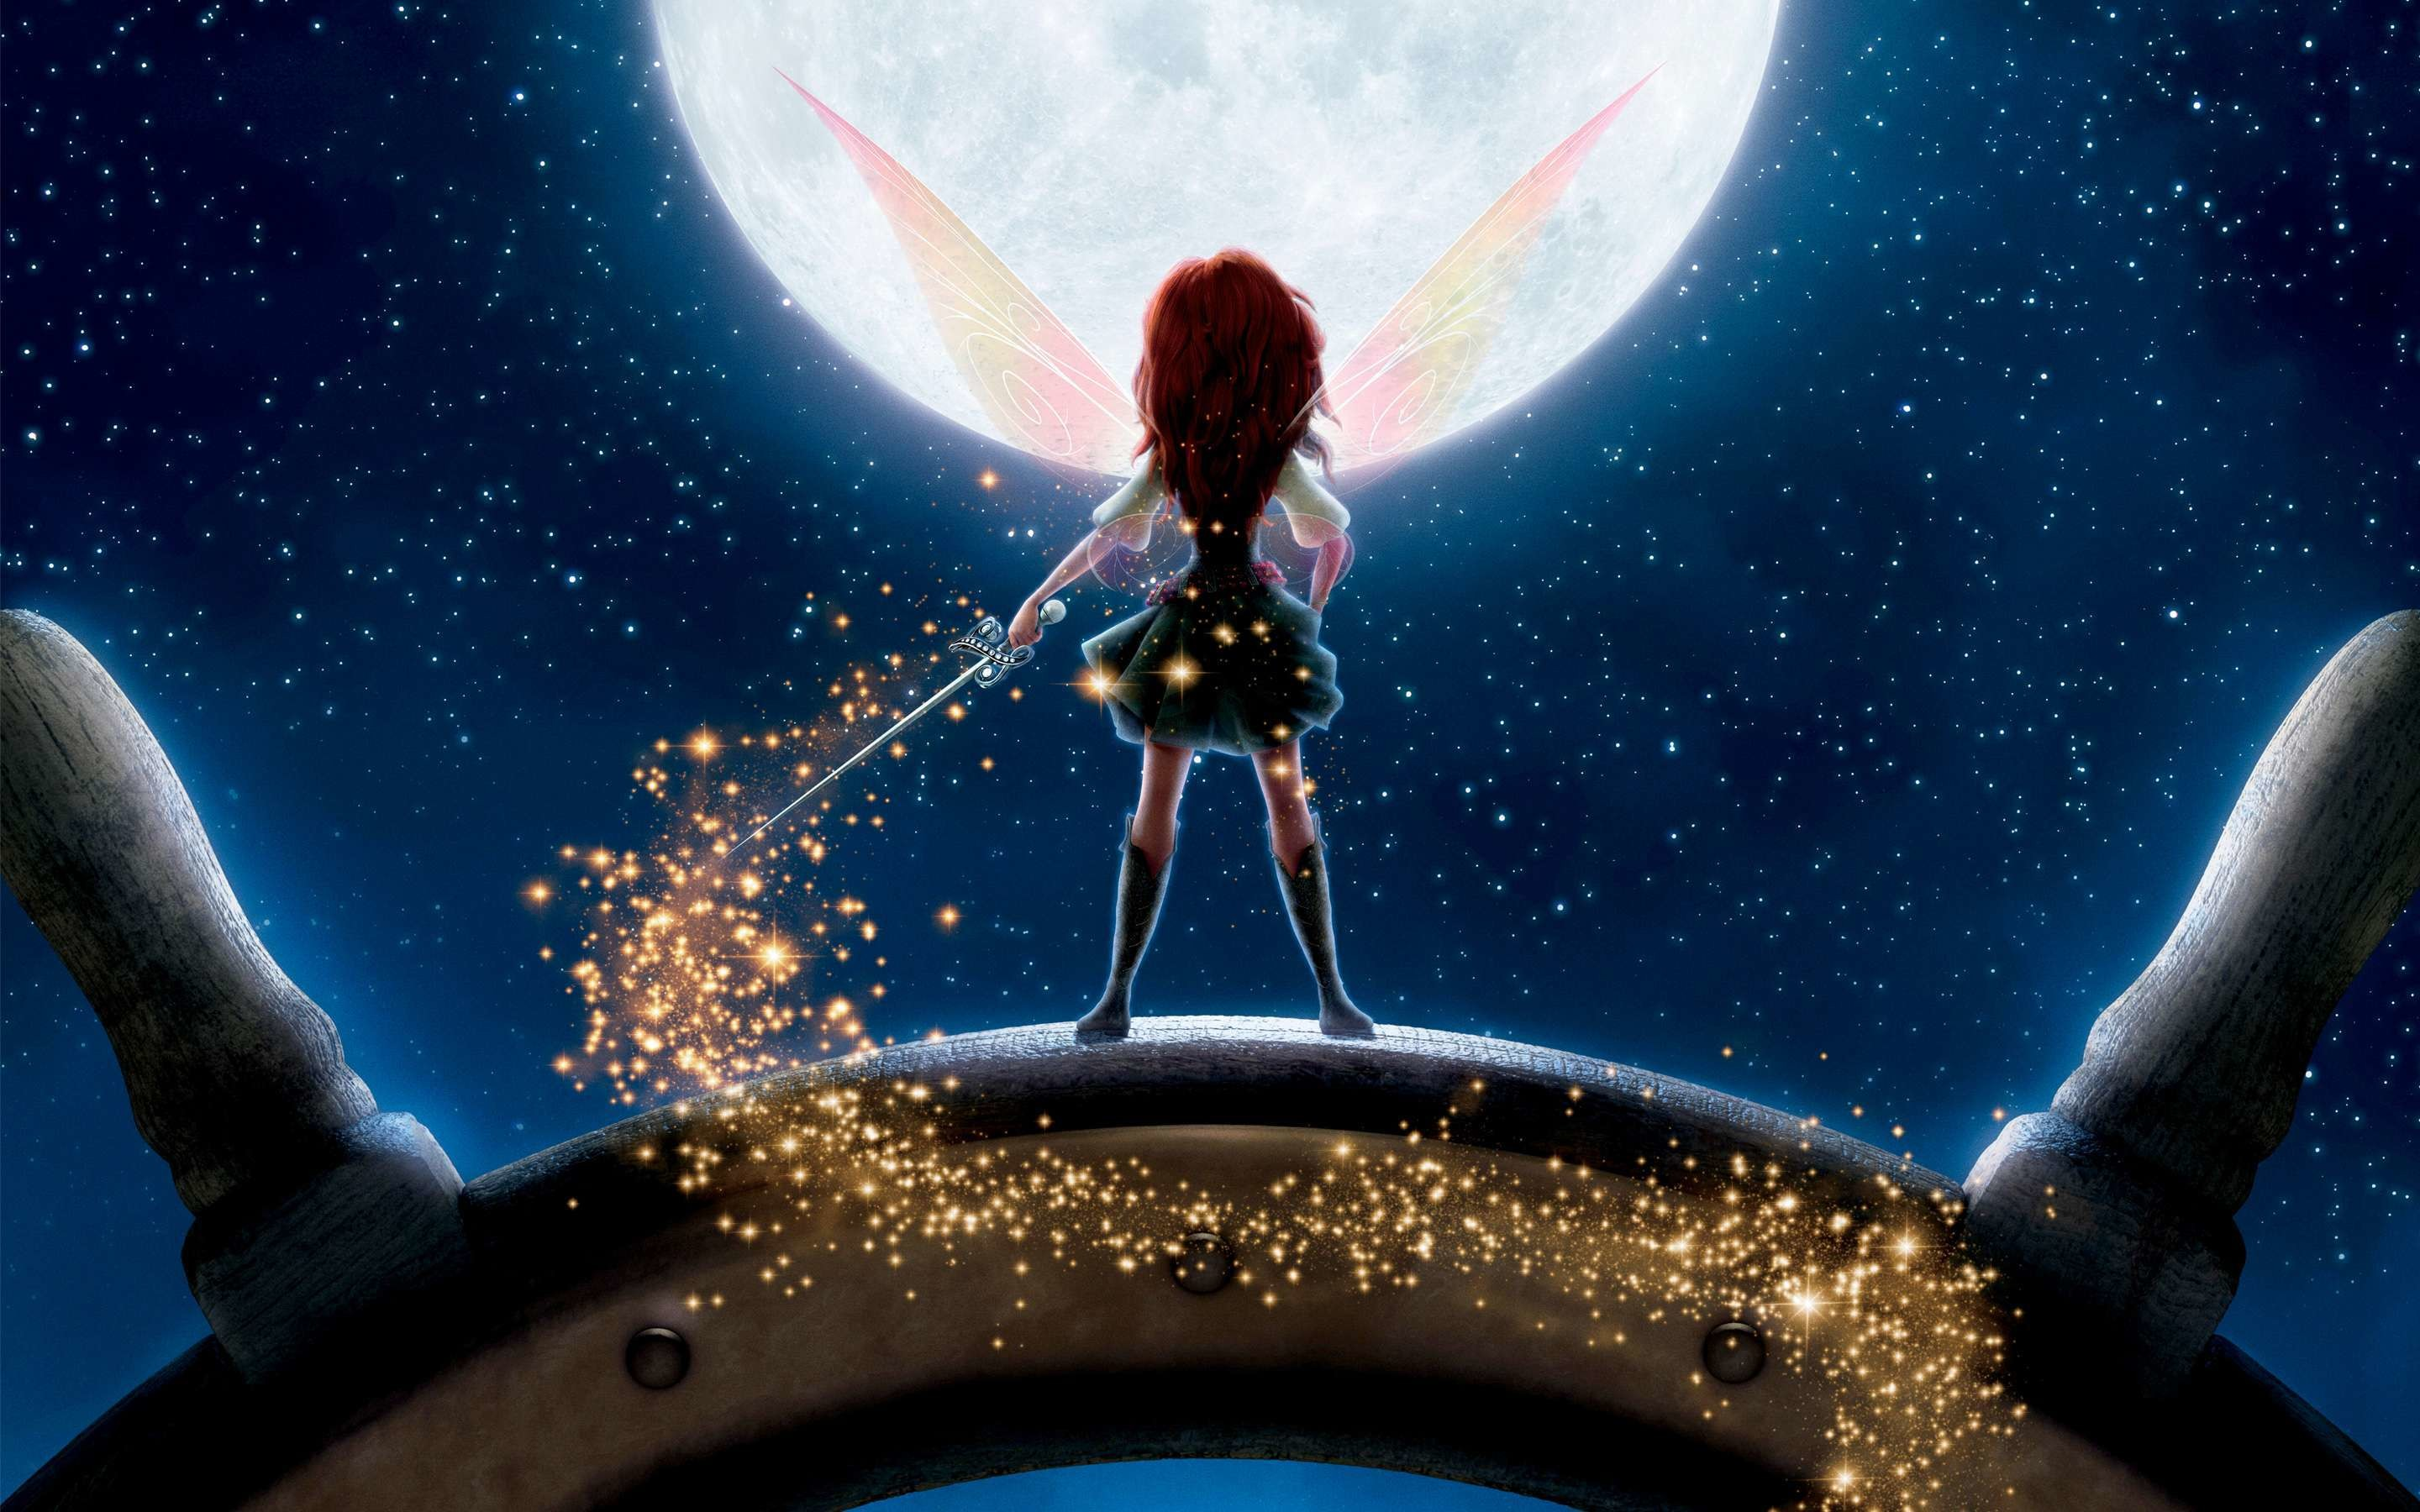 Disney The Pirate Fairy 2014 : Hd Wallpapers